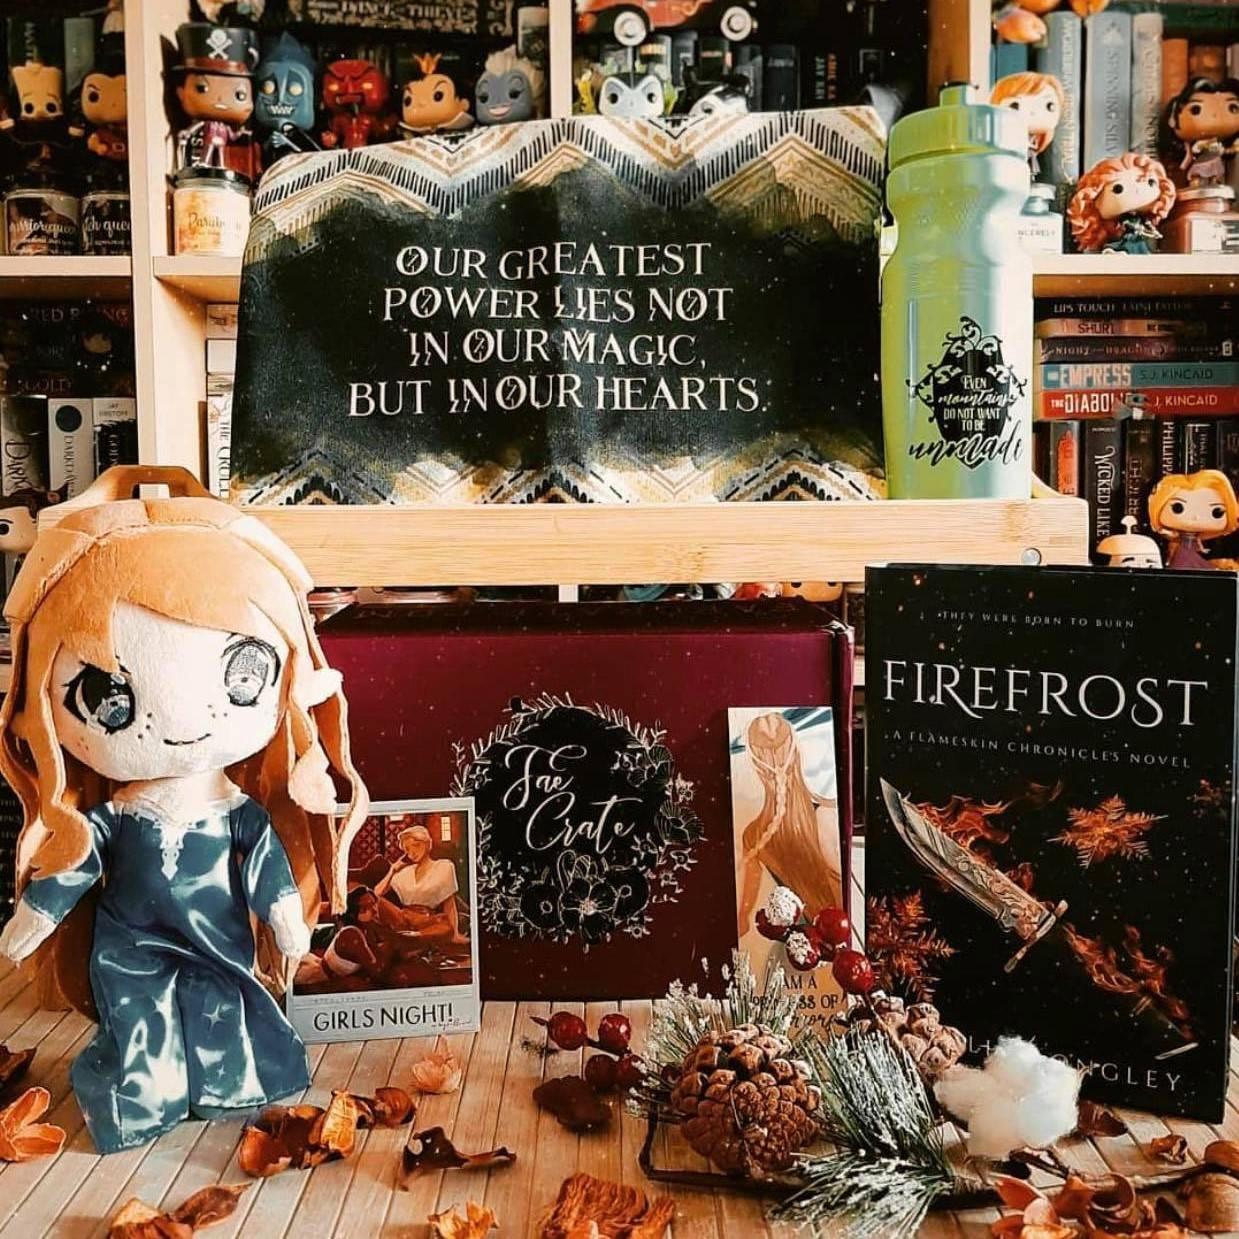 October 2020 This Means War box theme includes exclusive High Lady Plushie, Firefrost by Camille Longley, The Guinevere Deception Water Bottle, Kingdom of Souls Zipper Pouch, Rin/Ares Olympian Print, and Sheilded Woodmark.